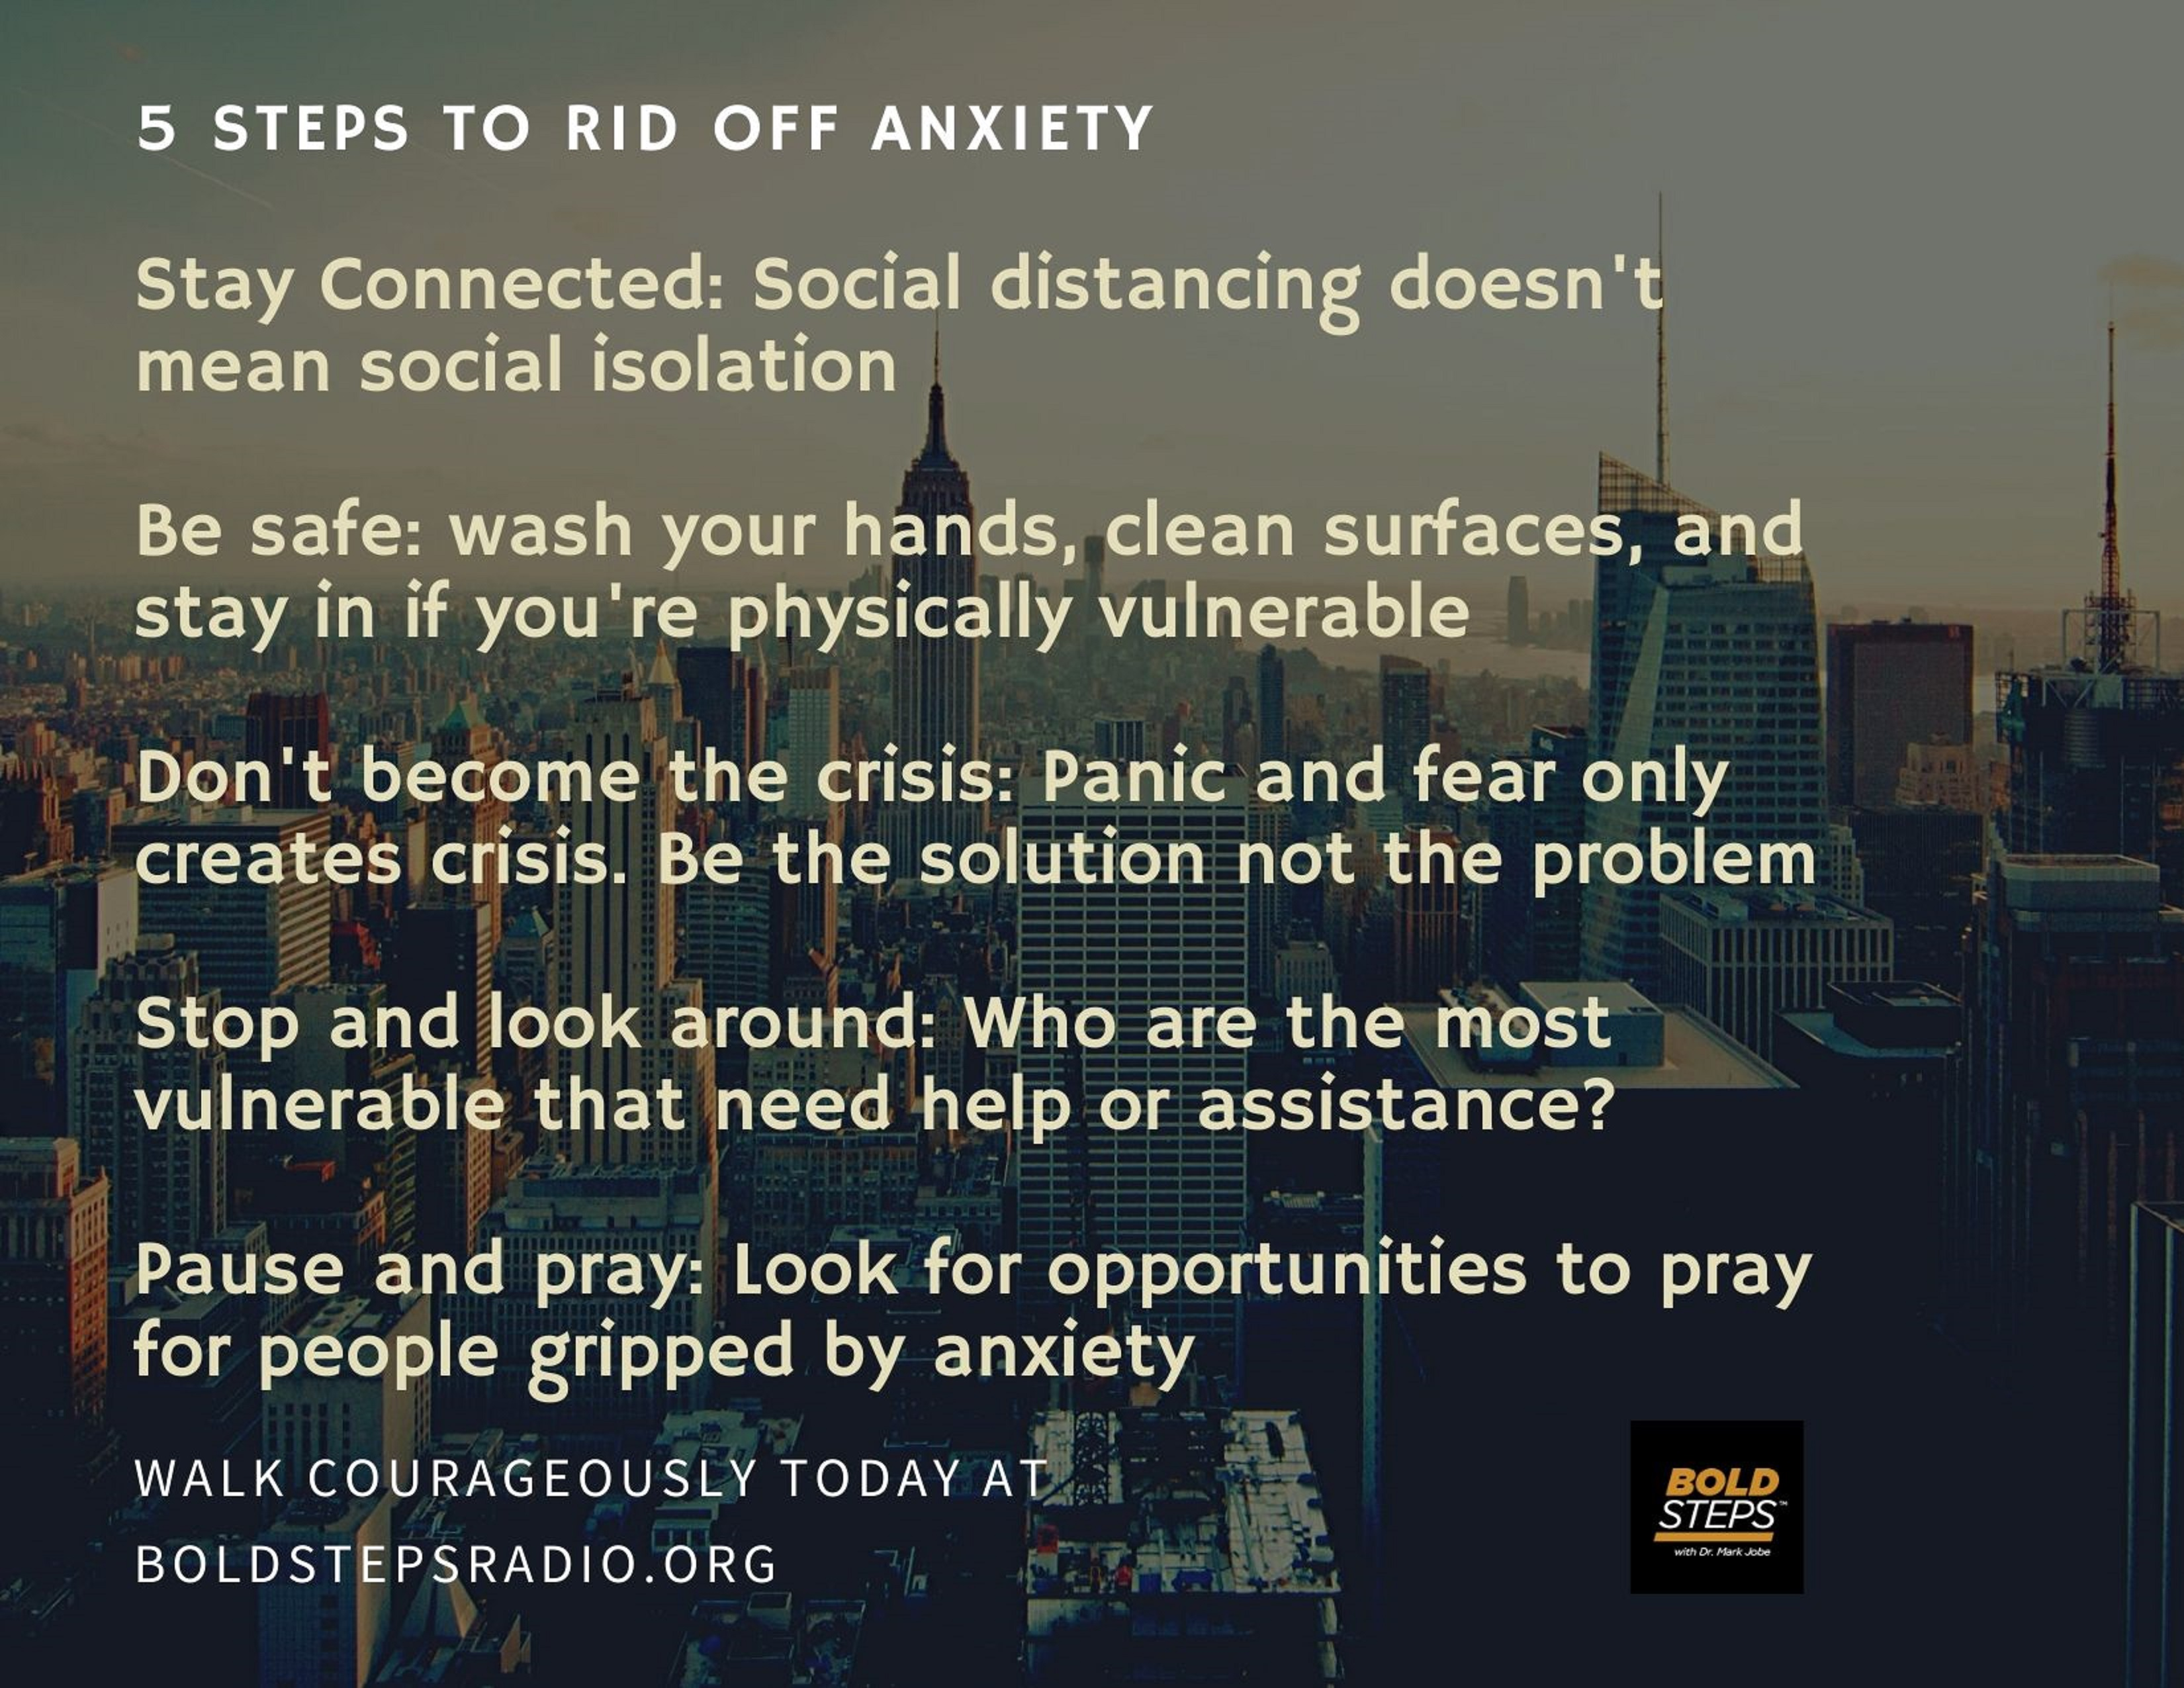 5 Steps to Rid Off Anxiety